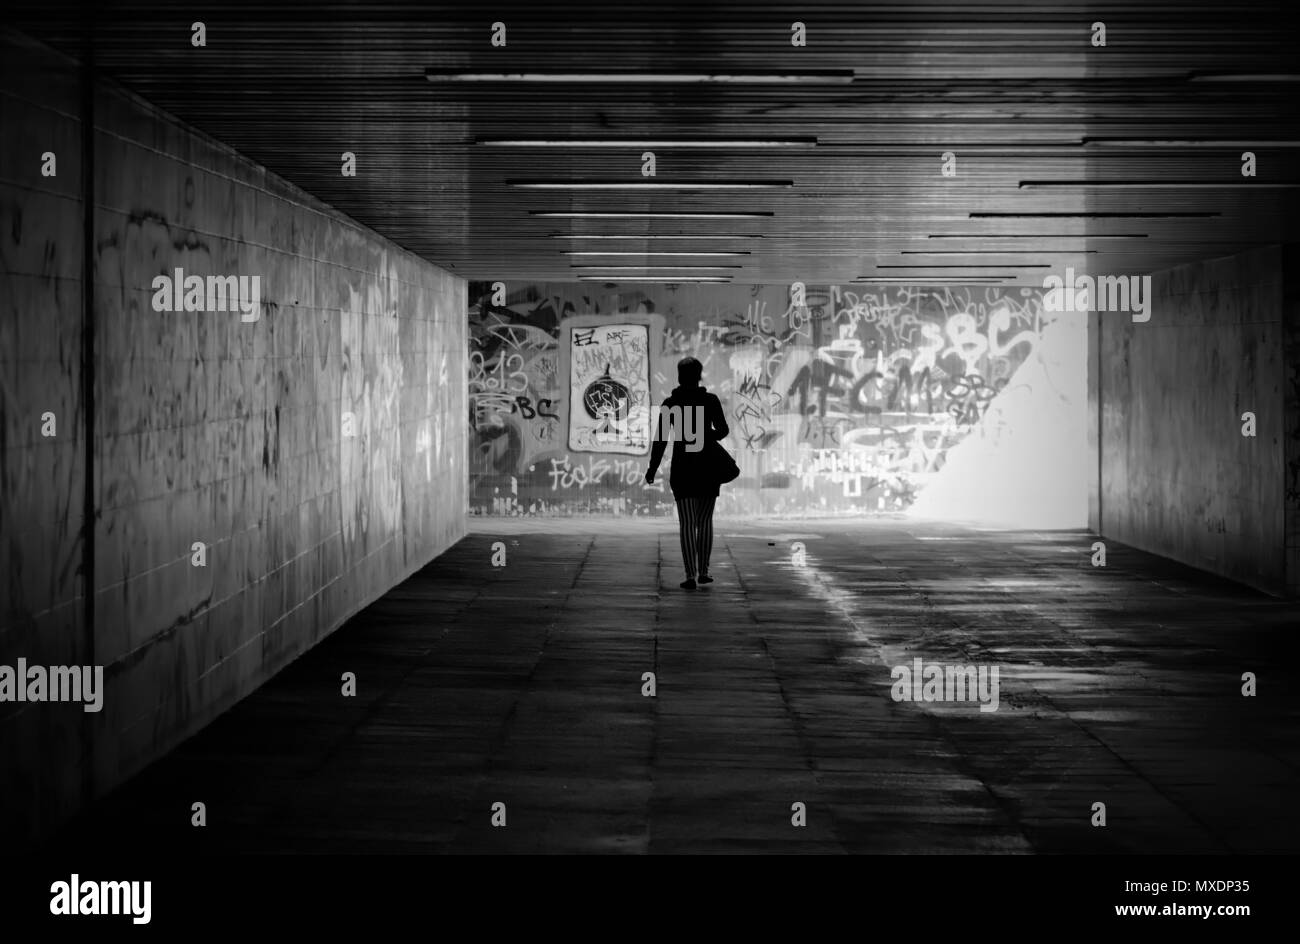 Woman in an underpass - Stock Image